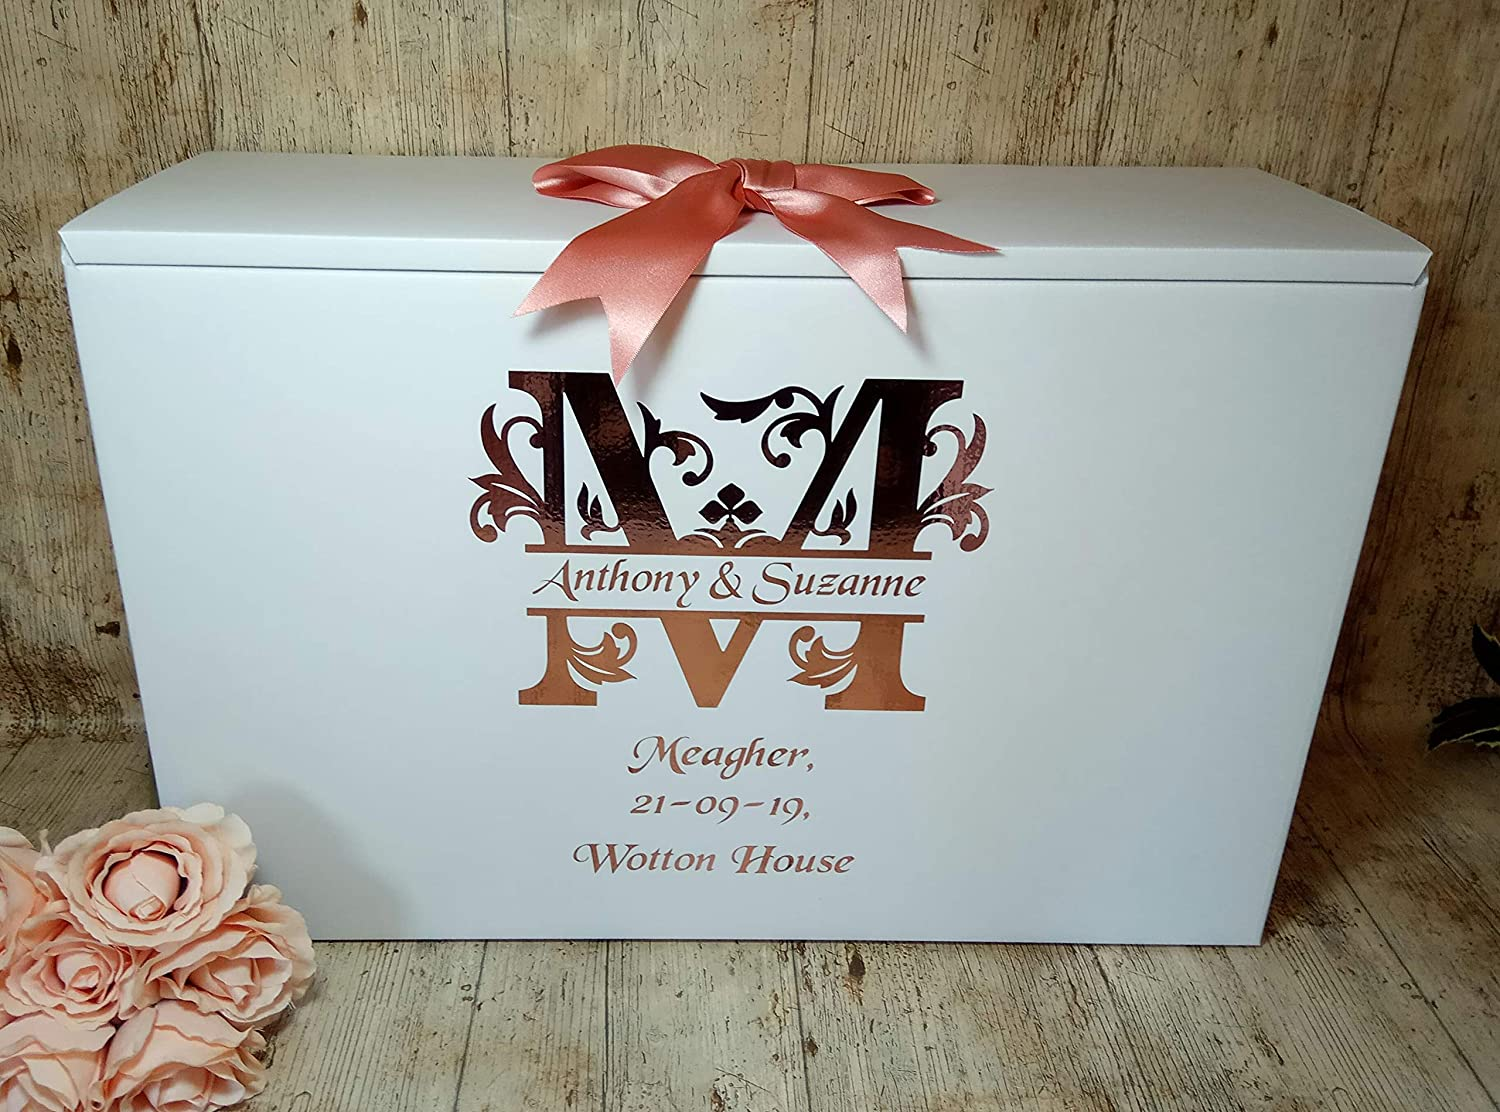 Wedding Dress Box Wedding Dress Travel Box Airline Box Personalised With Monogram Initial Of Surname A To Z Letters Available Acid Free Ph Neutral Amazon Co Uk Handmade